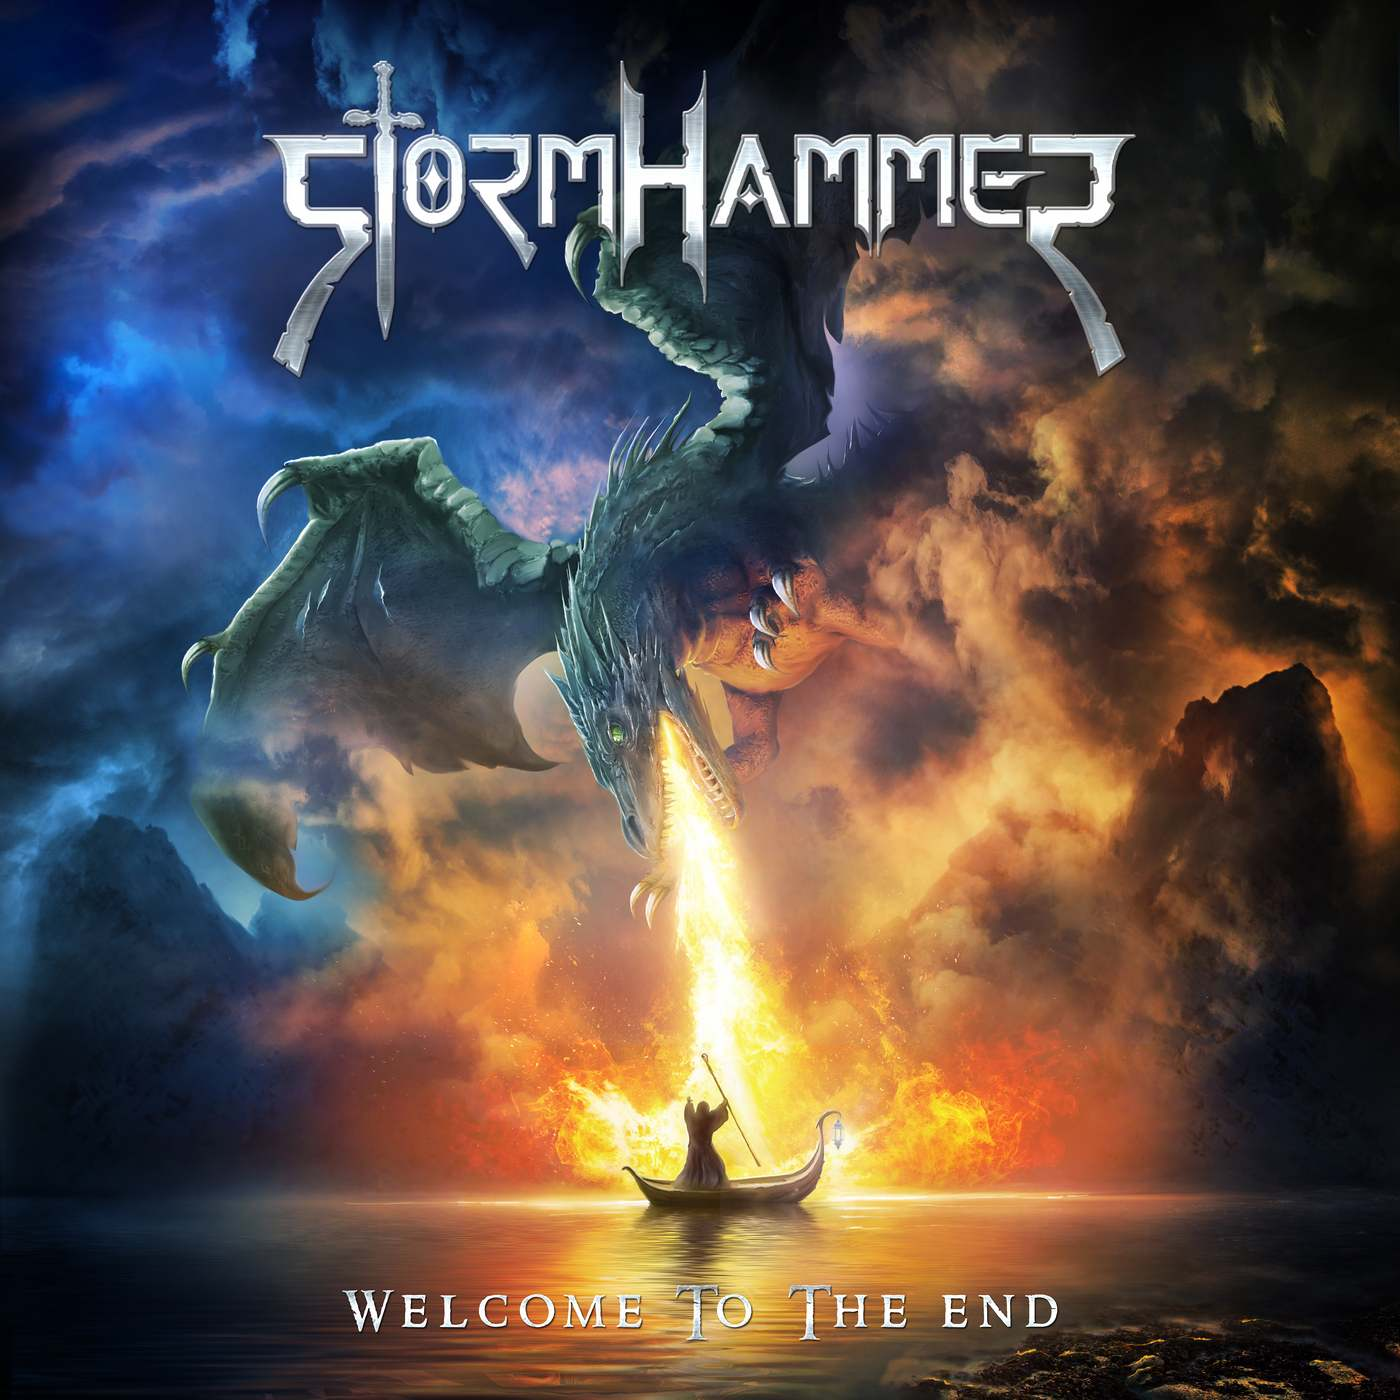 Stormhammer: Welcome to the End (2017) Book Cover